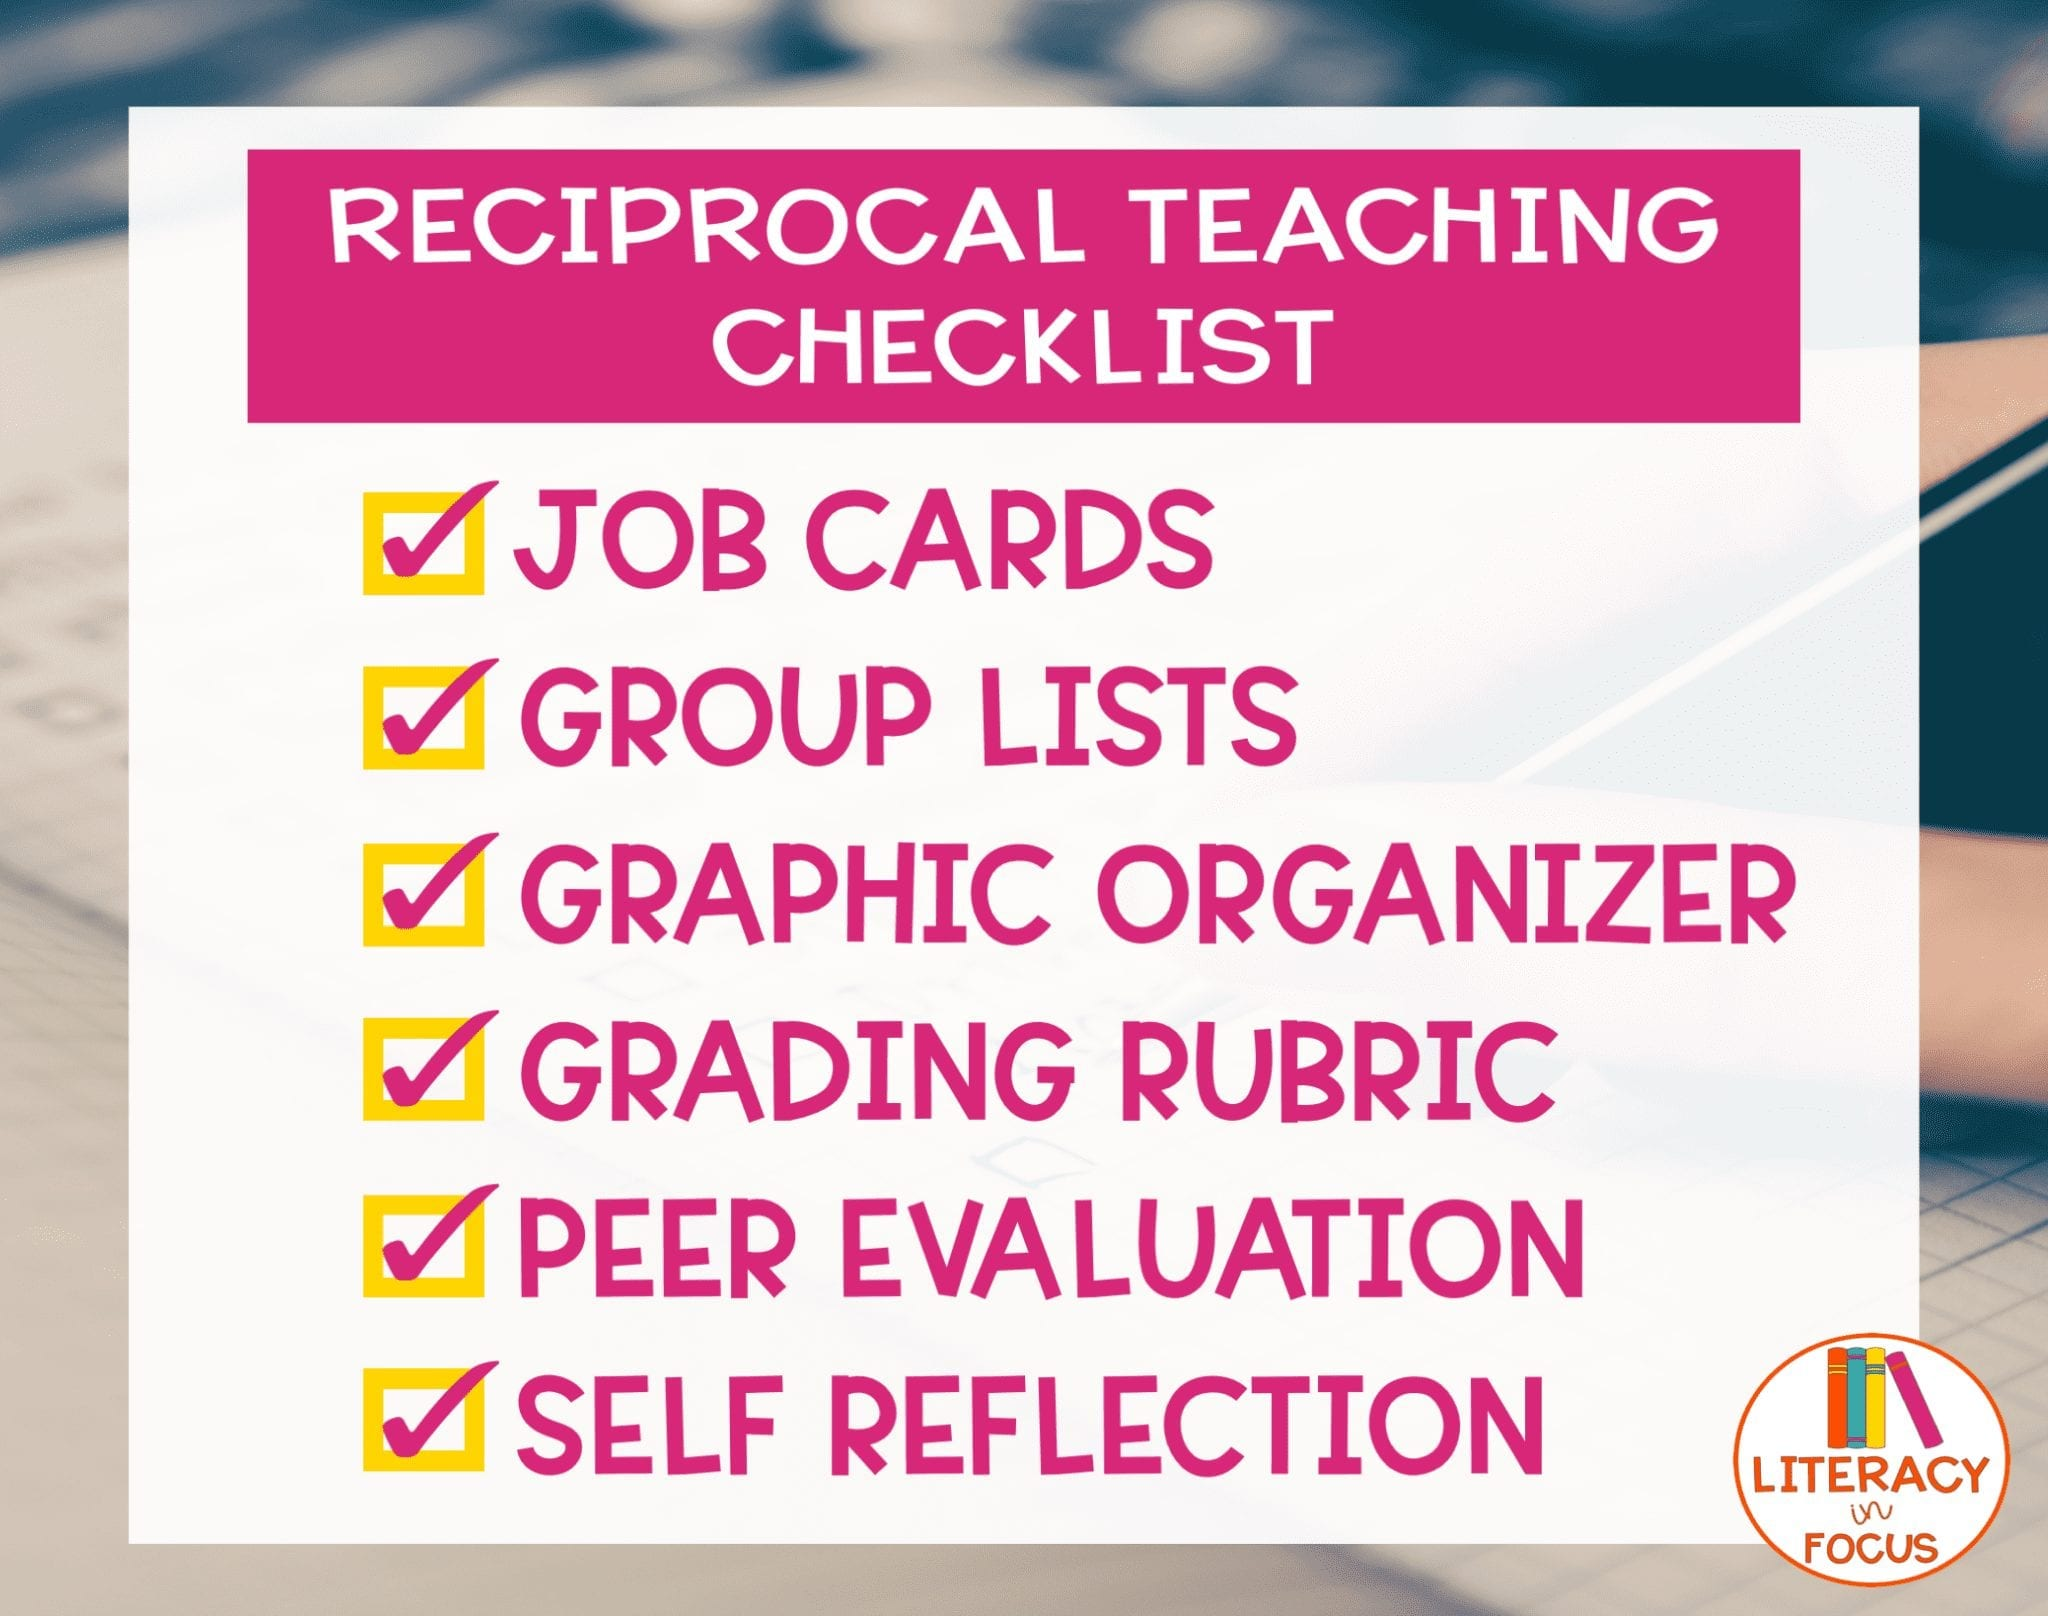 Reciprocal Teaching Checklist